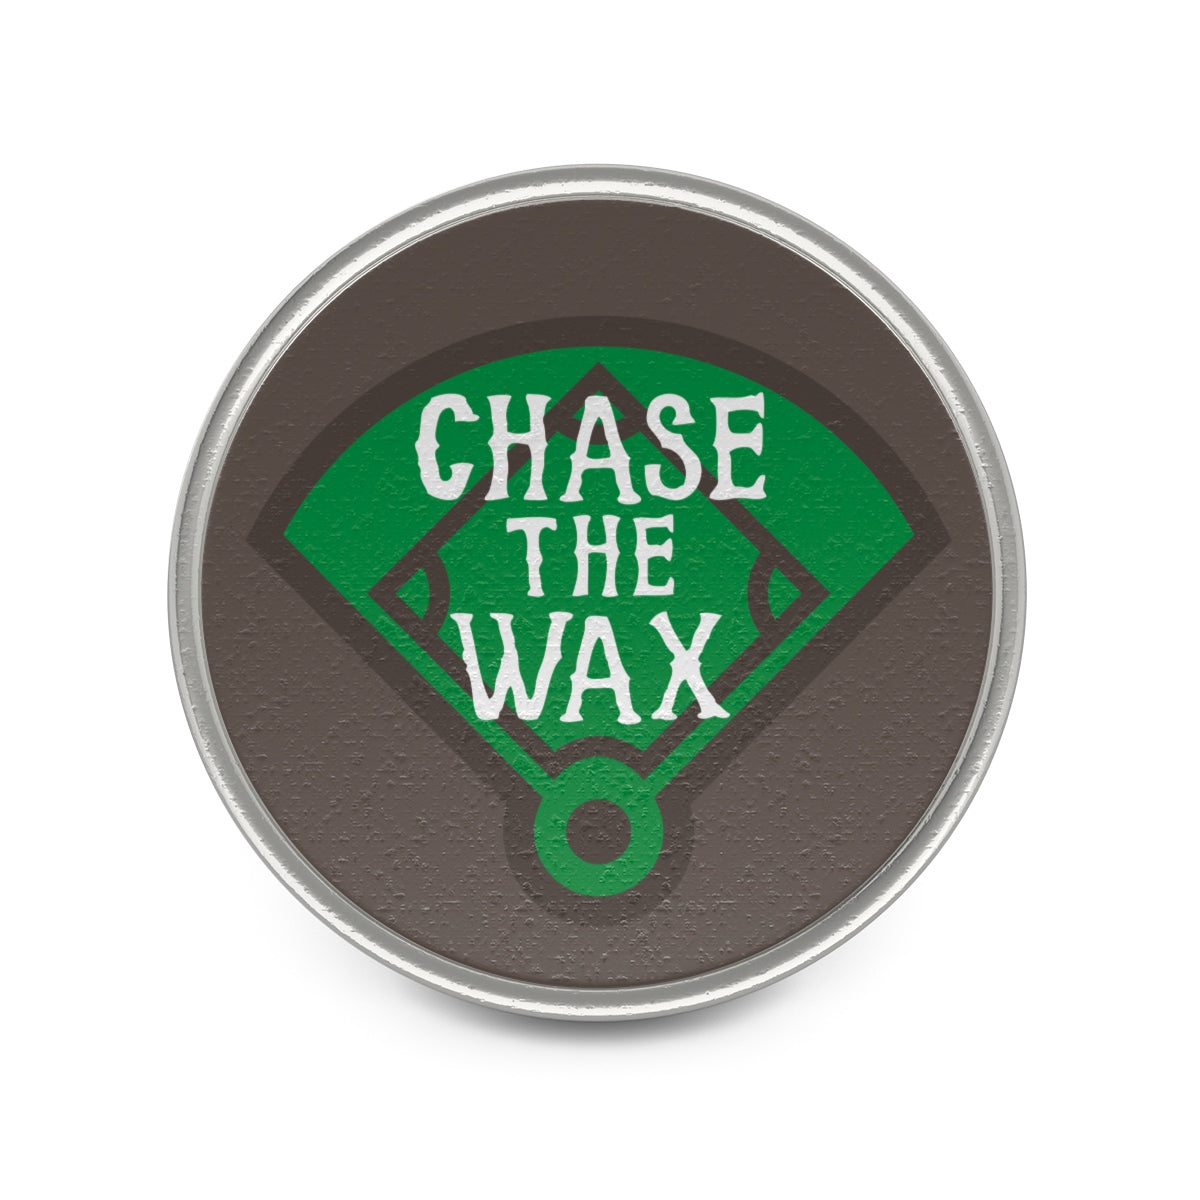 Chase The Wax - Metal Pin